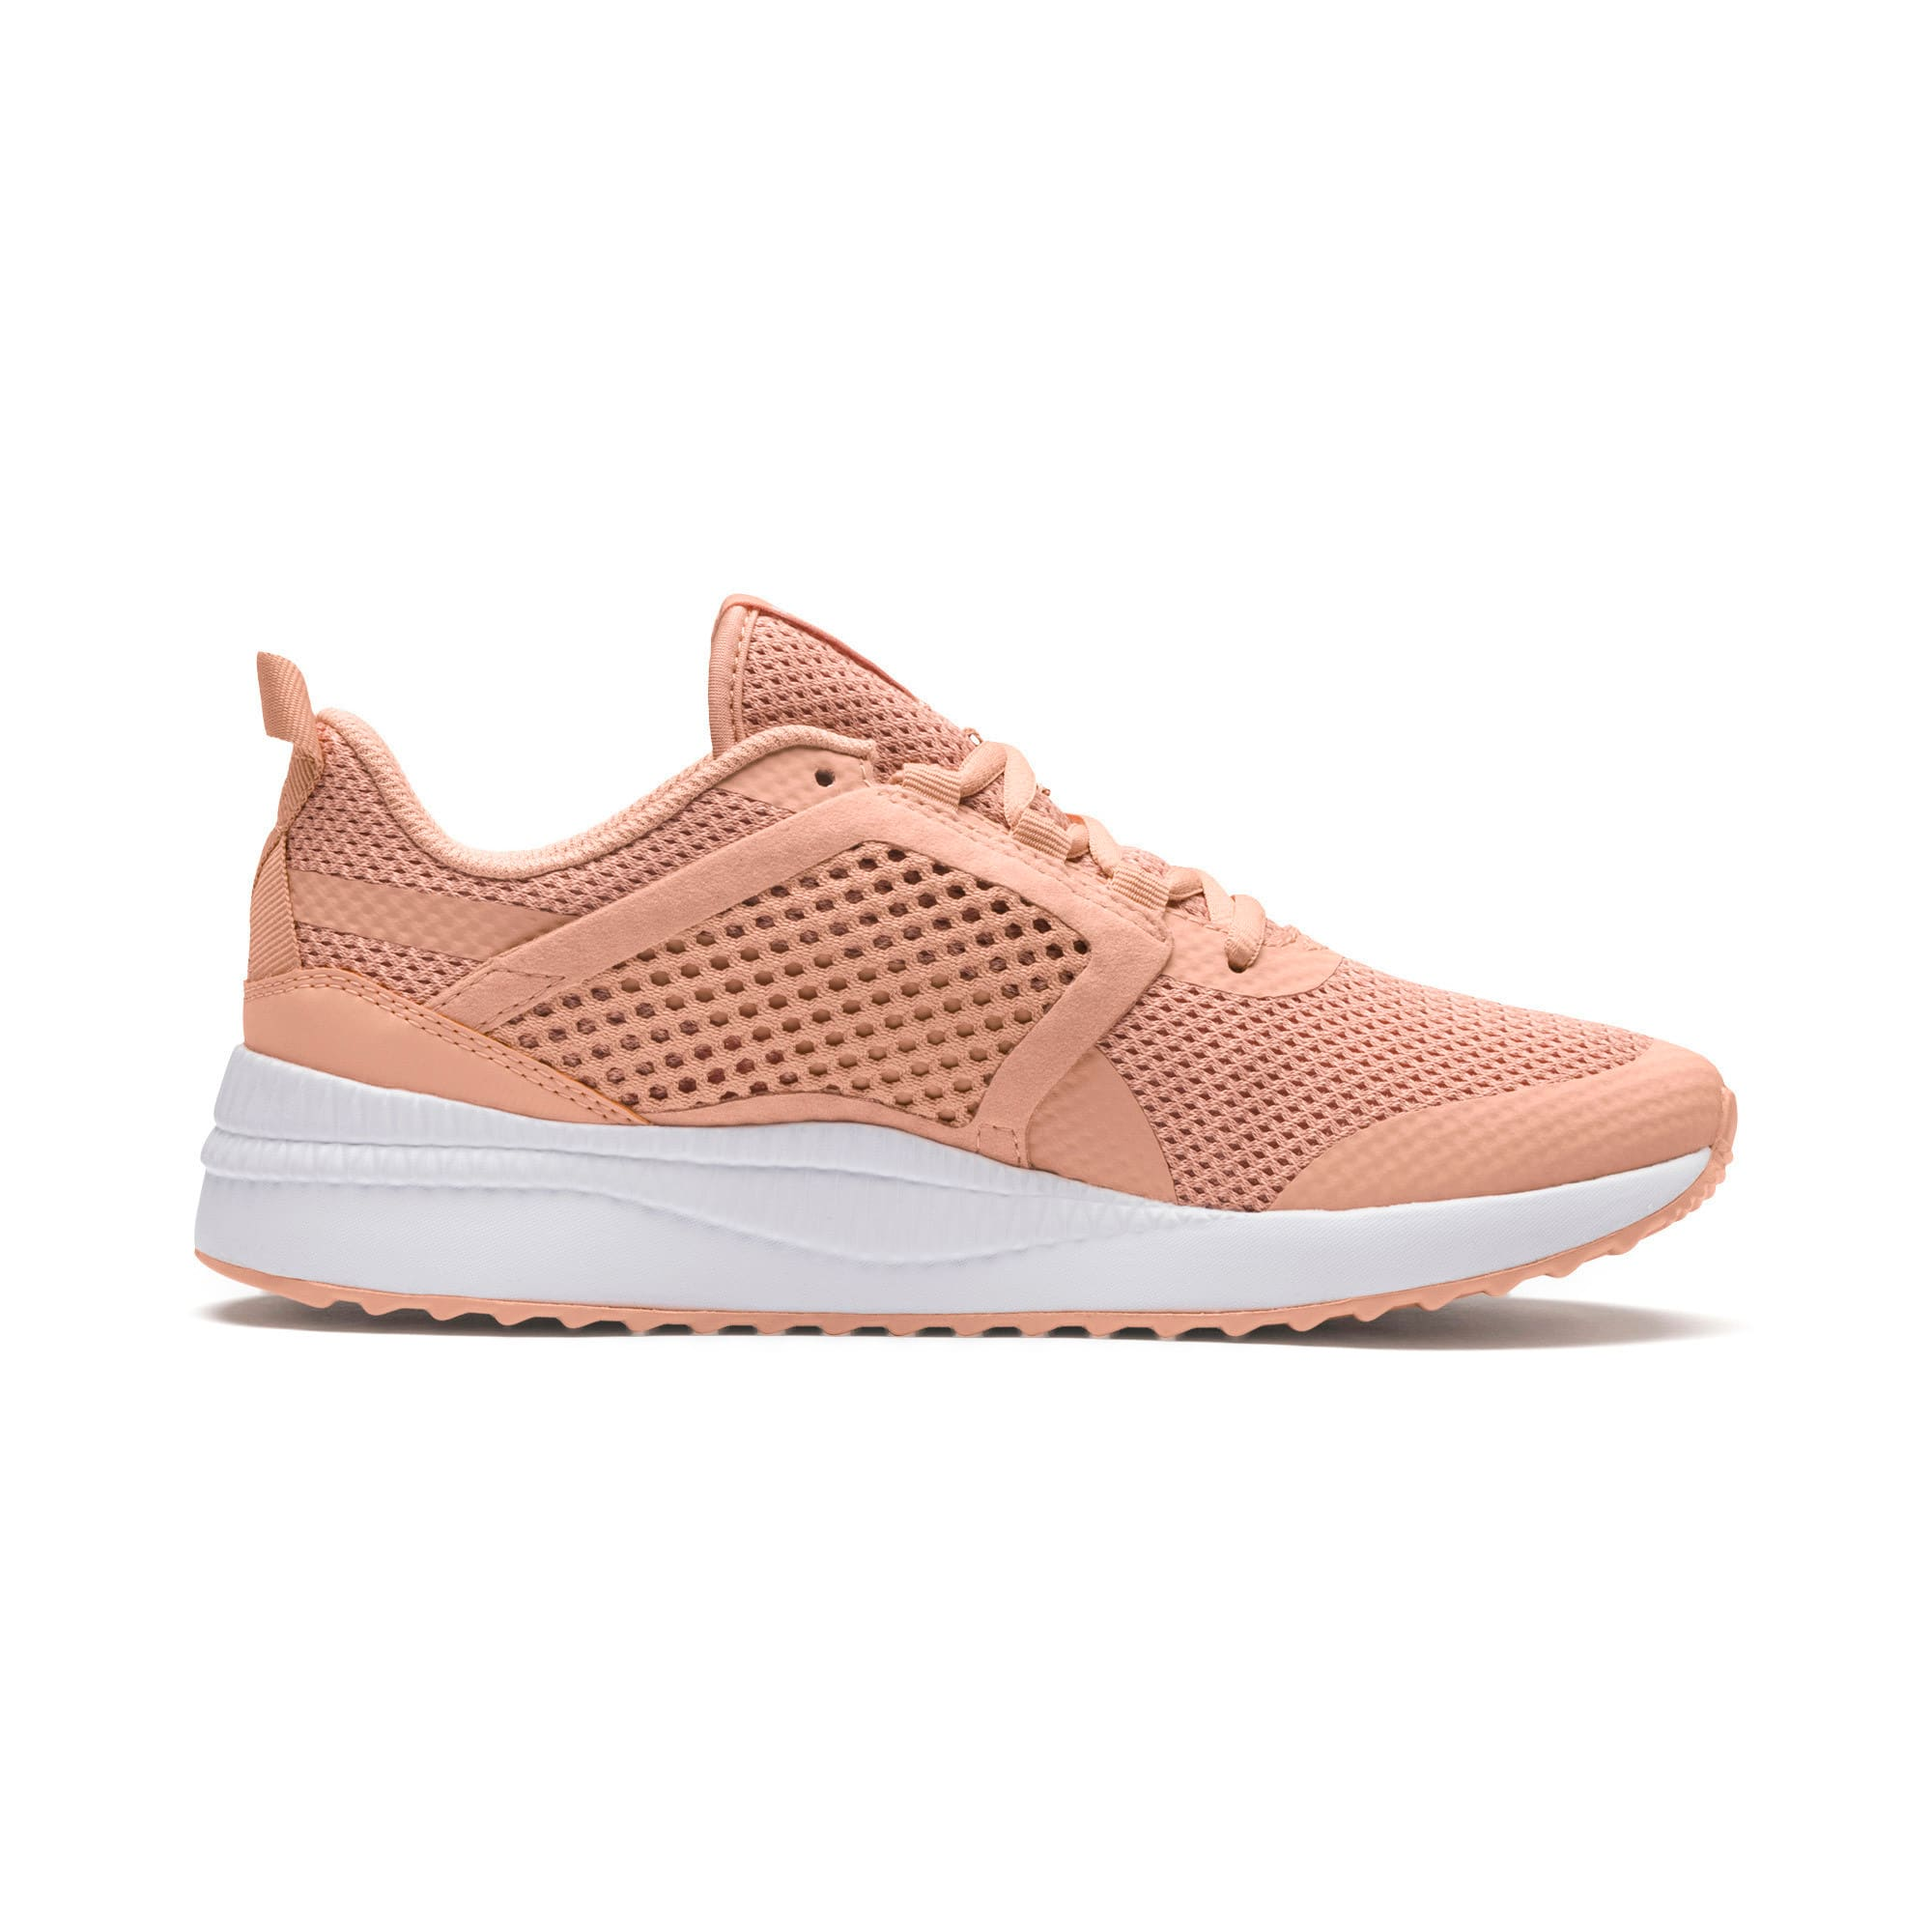 Thumbnail 5 of Pacer Next Net Trainers, Dusty Coral-Coral-White, medium-IND